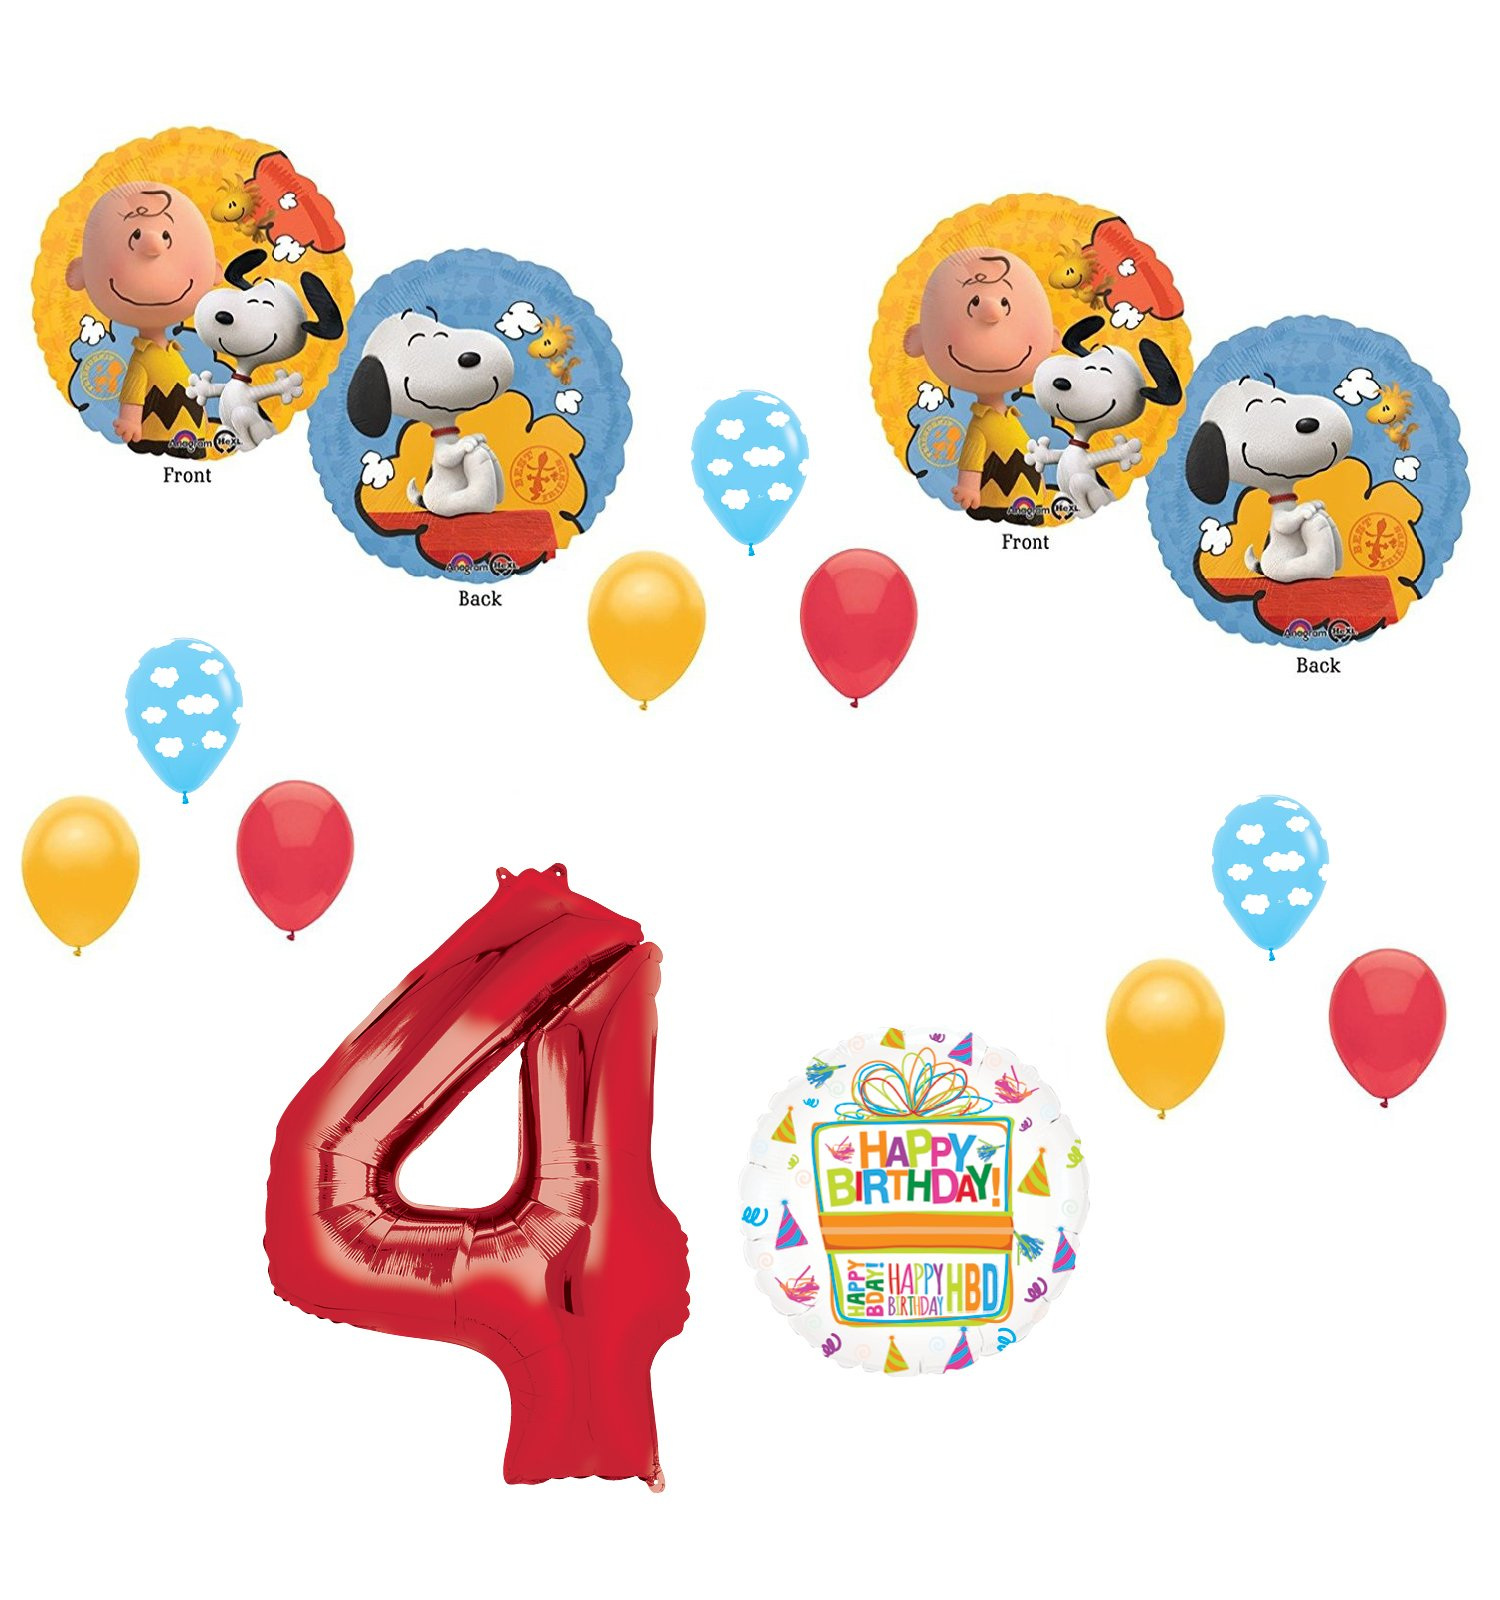 Charlie brown and Snoopy Peanuts 4th Birthday Party Supplies and Balloon Bouquet Decorations